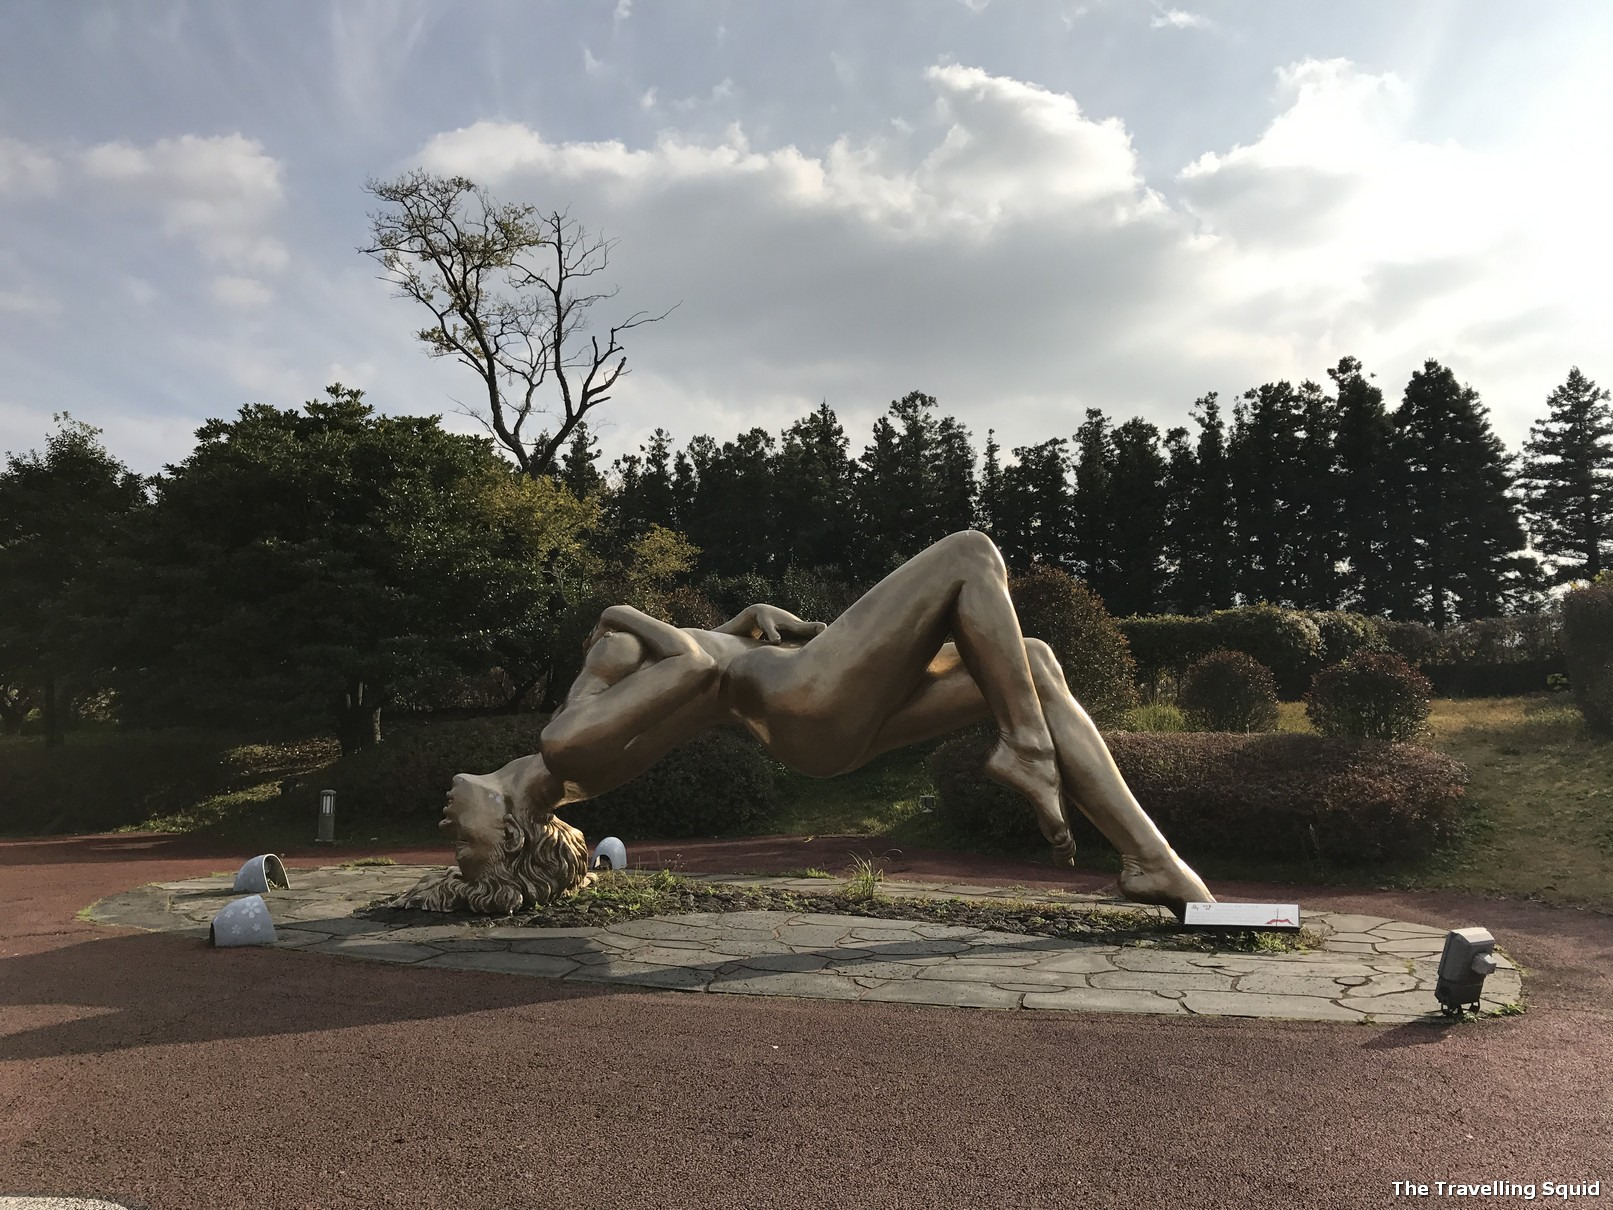 jeju loveland sculpture review